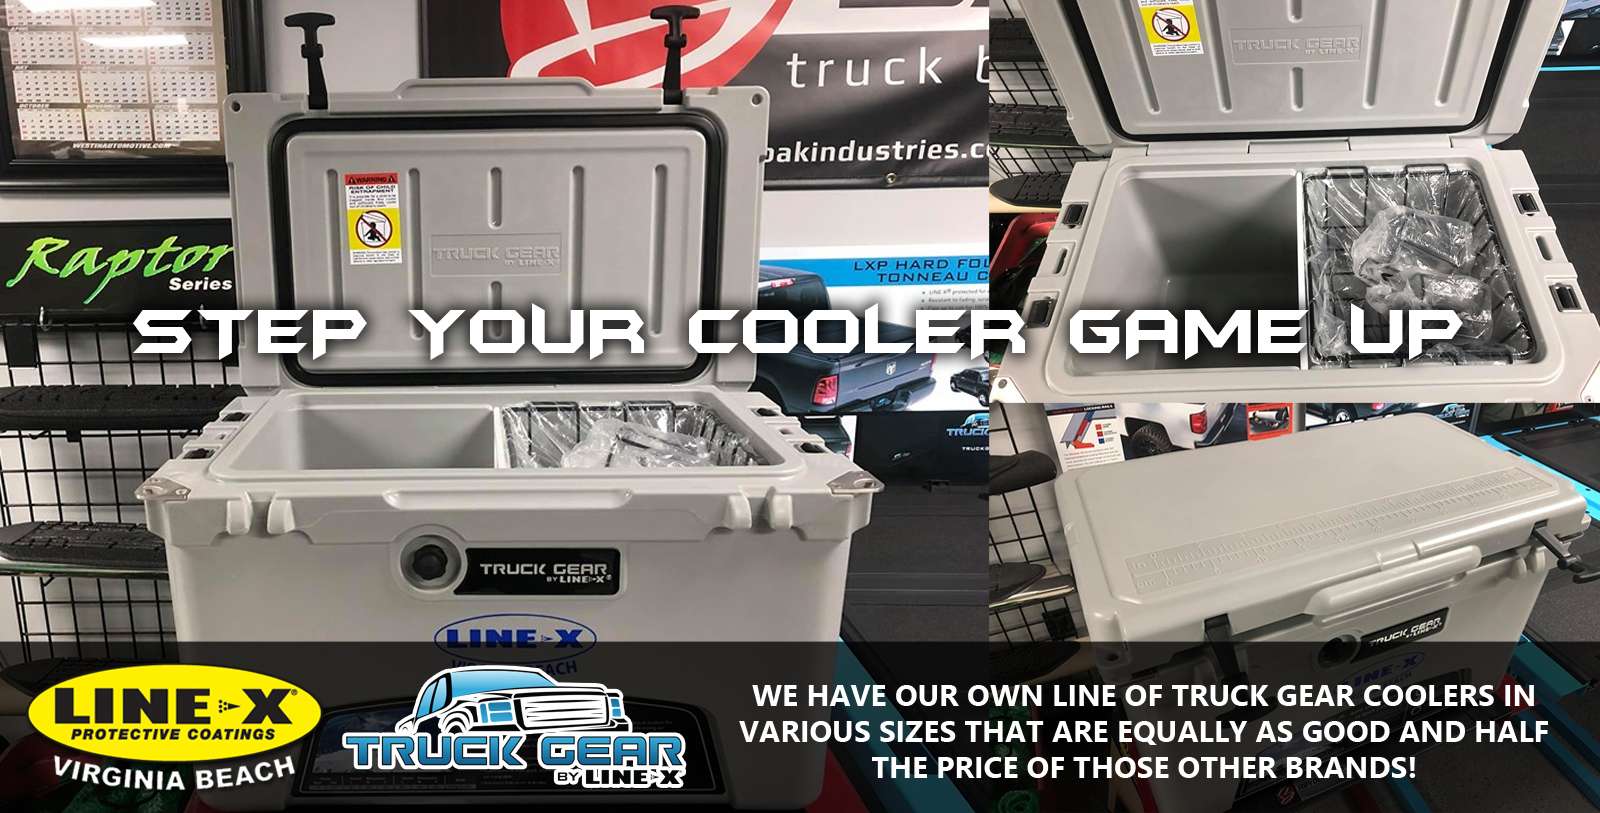 Summer is Upon Us and It's Time to Step Your Cooler Game Up!